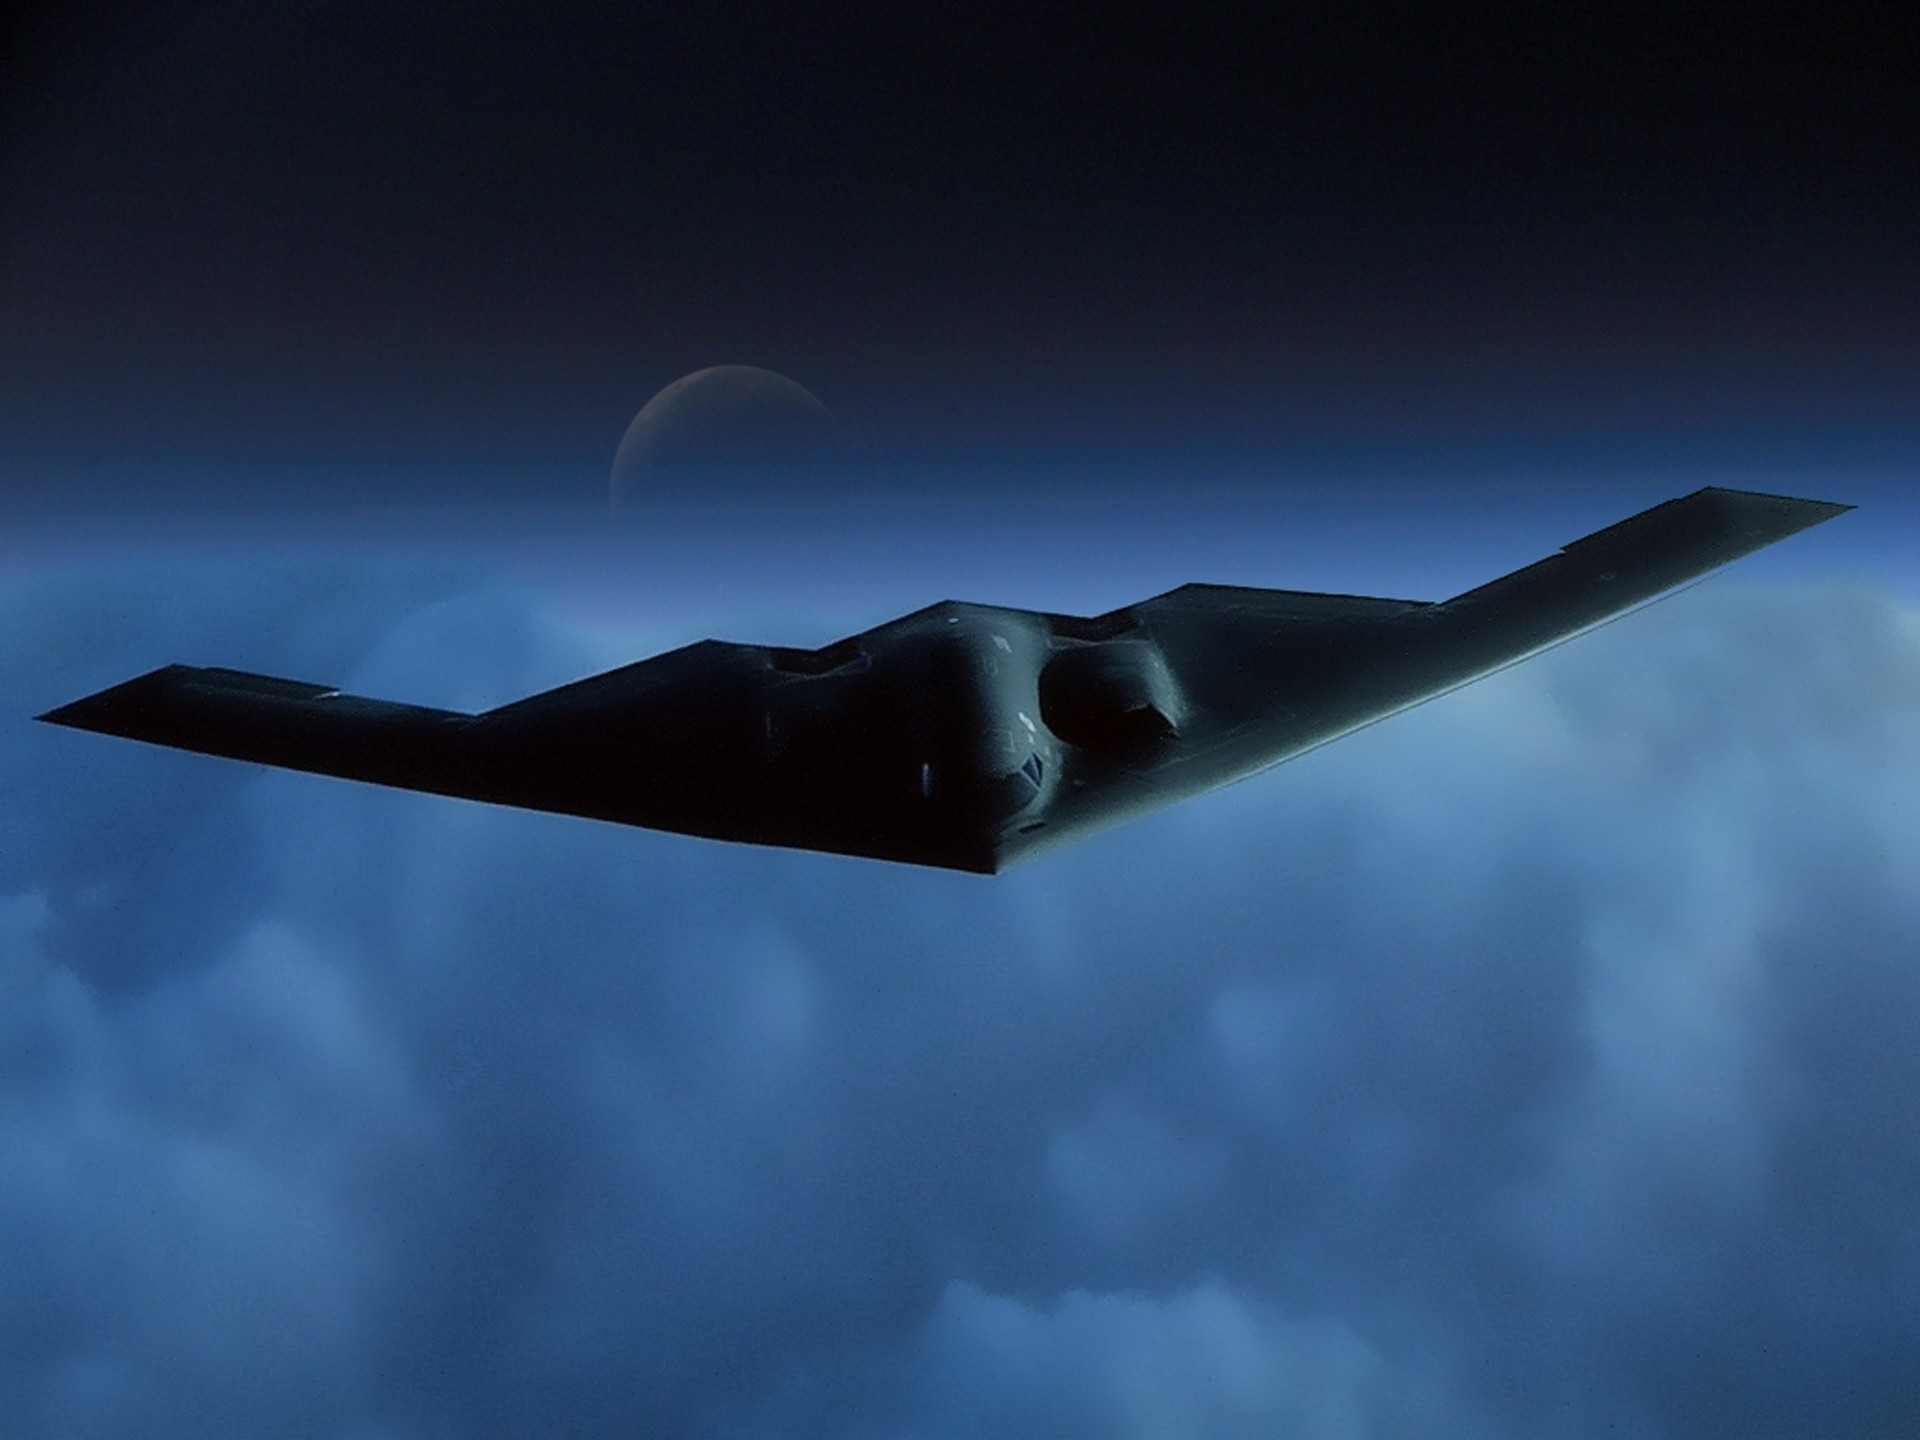 63 Stealth Bomber Wallpapers on WallpaperPlay 1920x1440